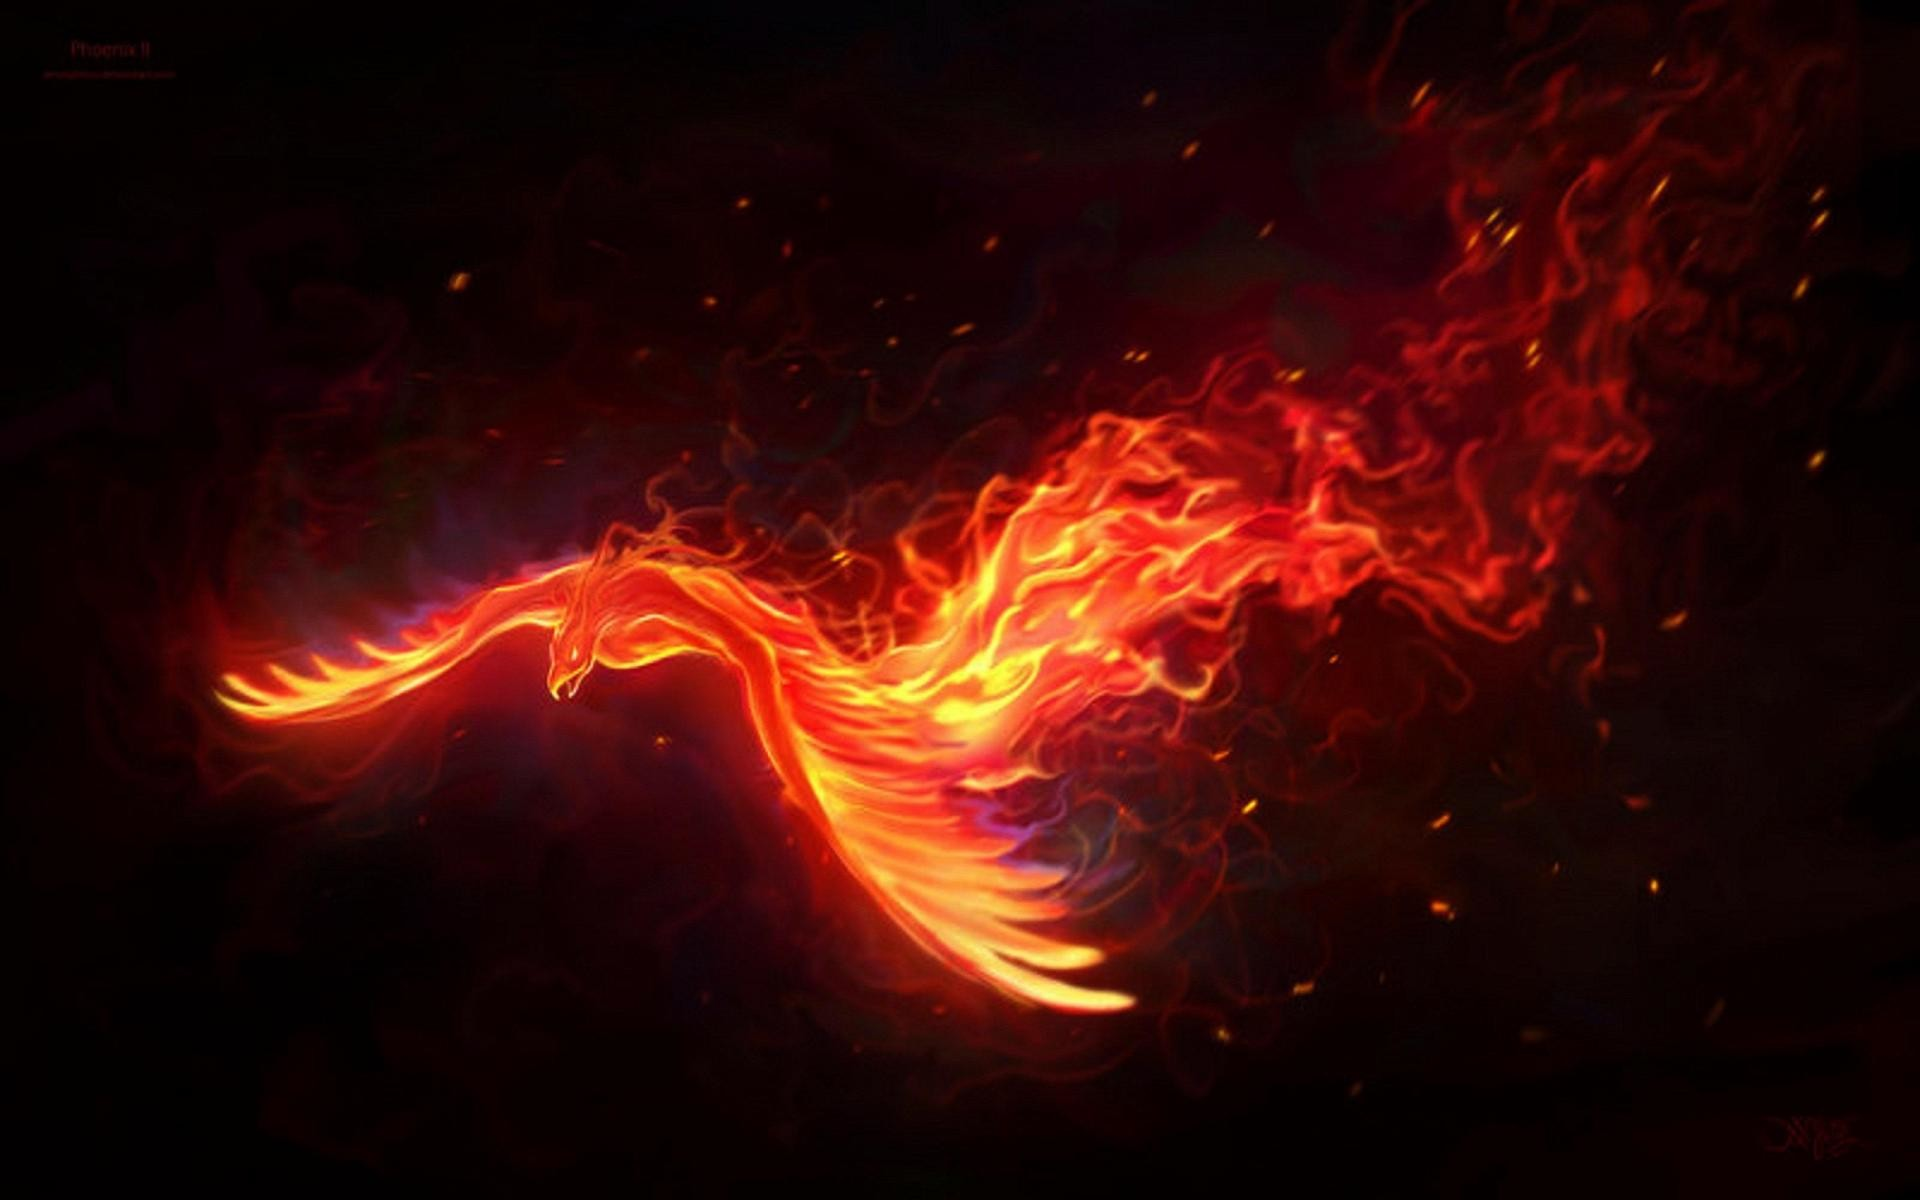 1920x1200 Fire phoenix 89329 High Quality and Resolution Wallpapers on